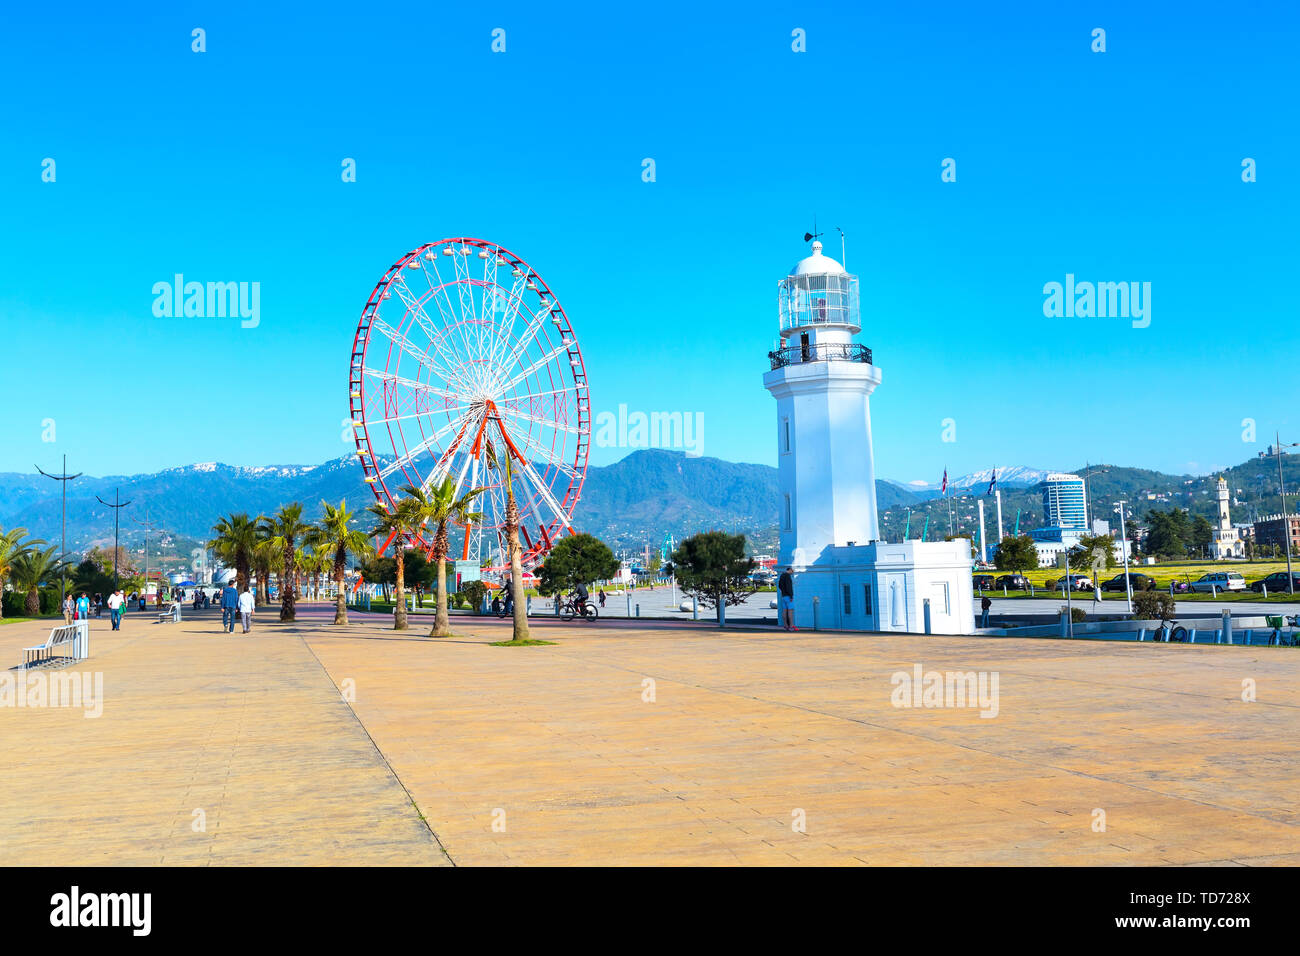 Batumi, Georgia - April 30, 2017: Ferris wheel, city panoramic landscape with palm trees and mountain peaks of Batumi, Georgia summer Black sea resort - Stock Image